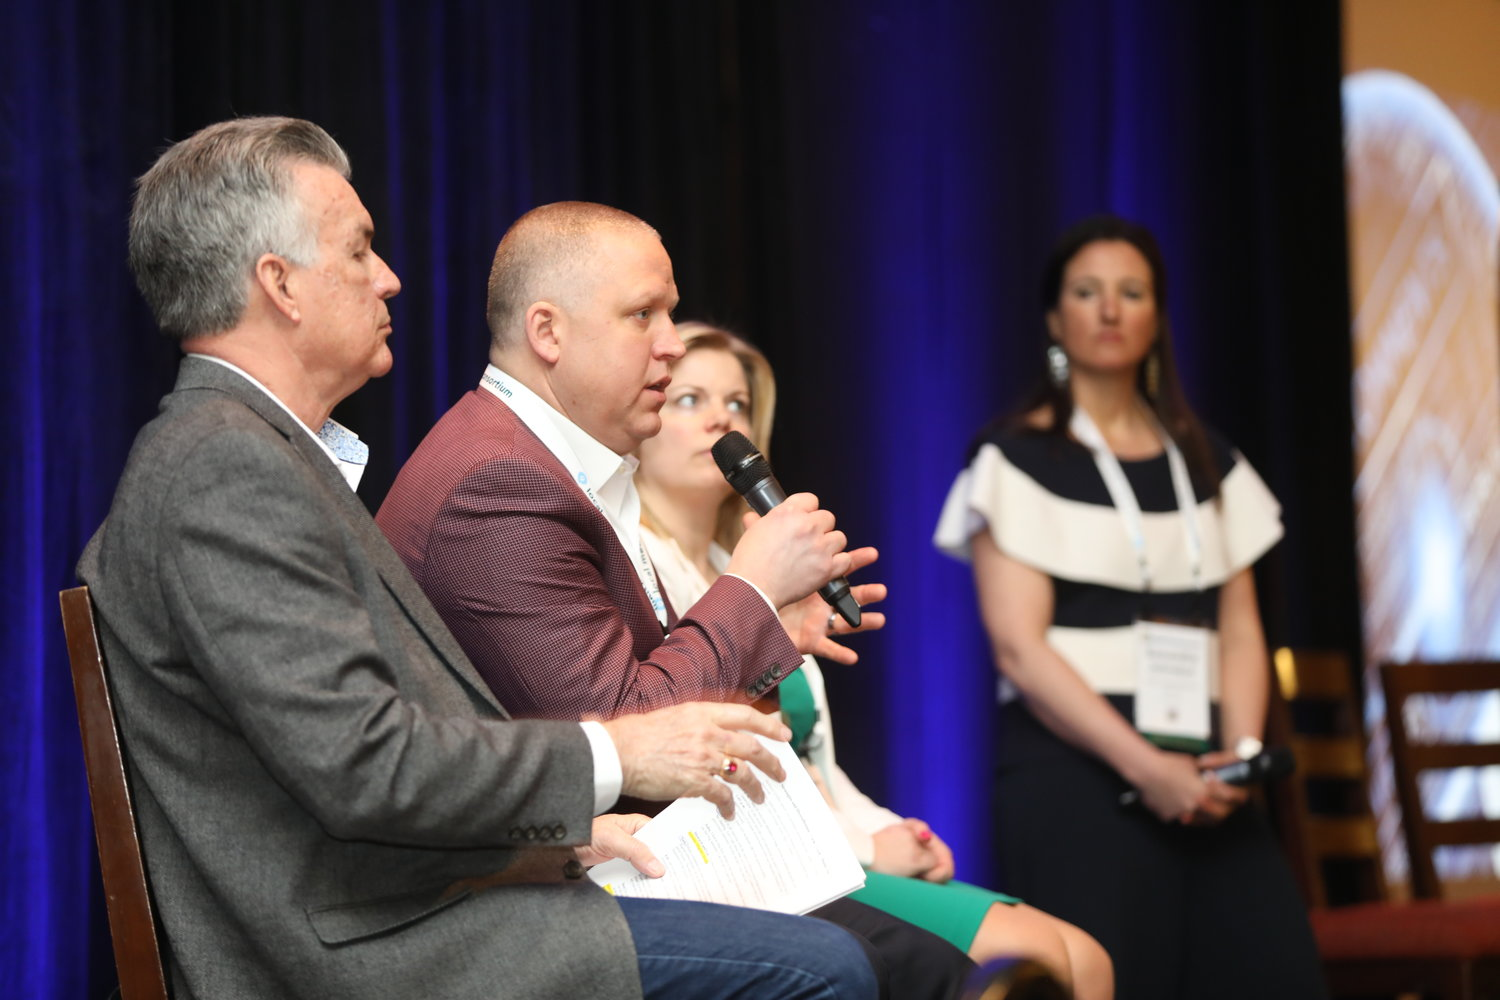 Revenue Strategies and Diversification: Howard Griffin, John Wulfert, Liz White and Samantha Johnston kick off the 2020 Mega-Conference. (Photo by Bob Booth)